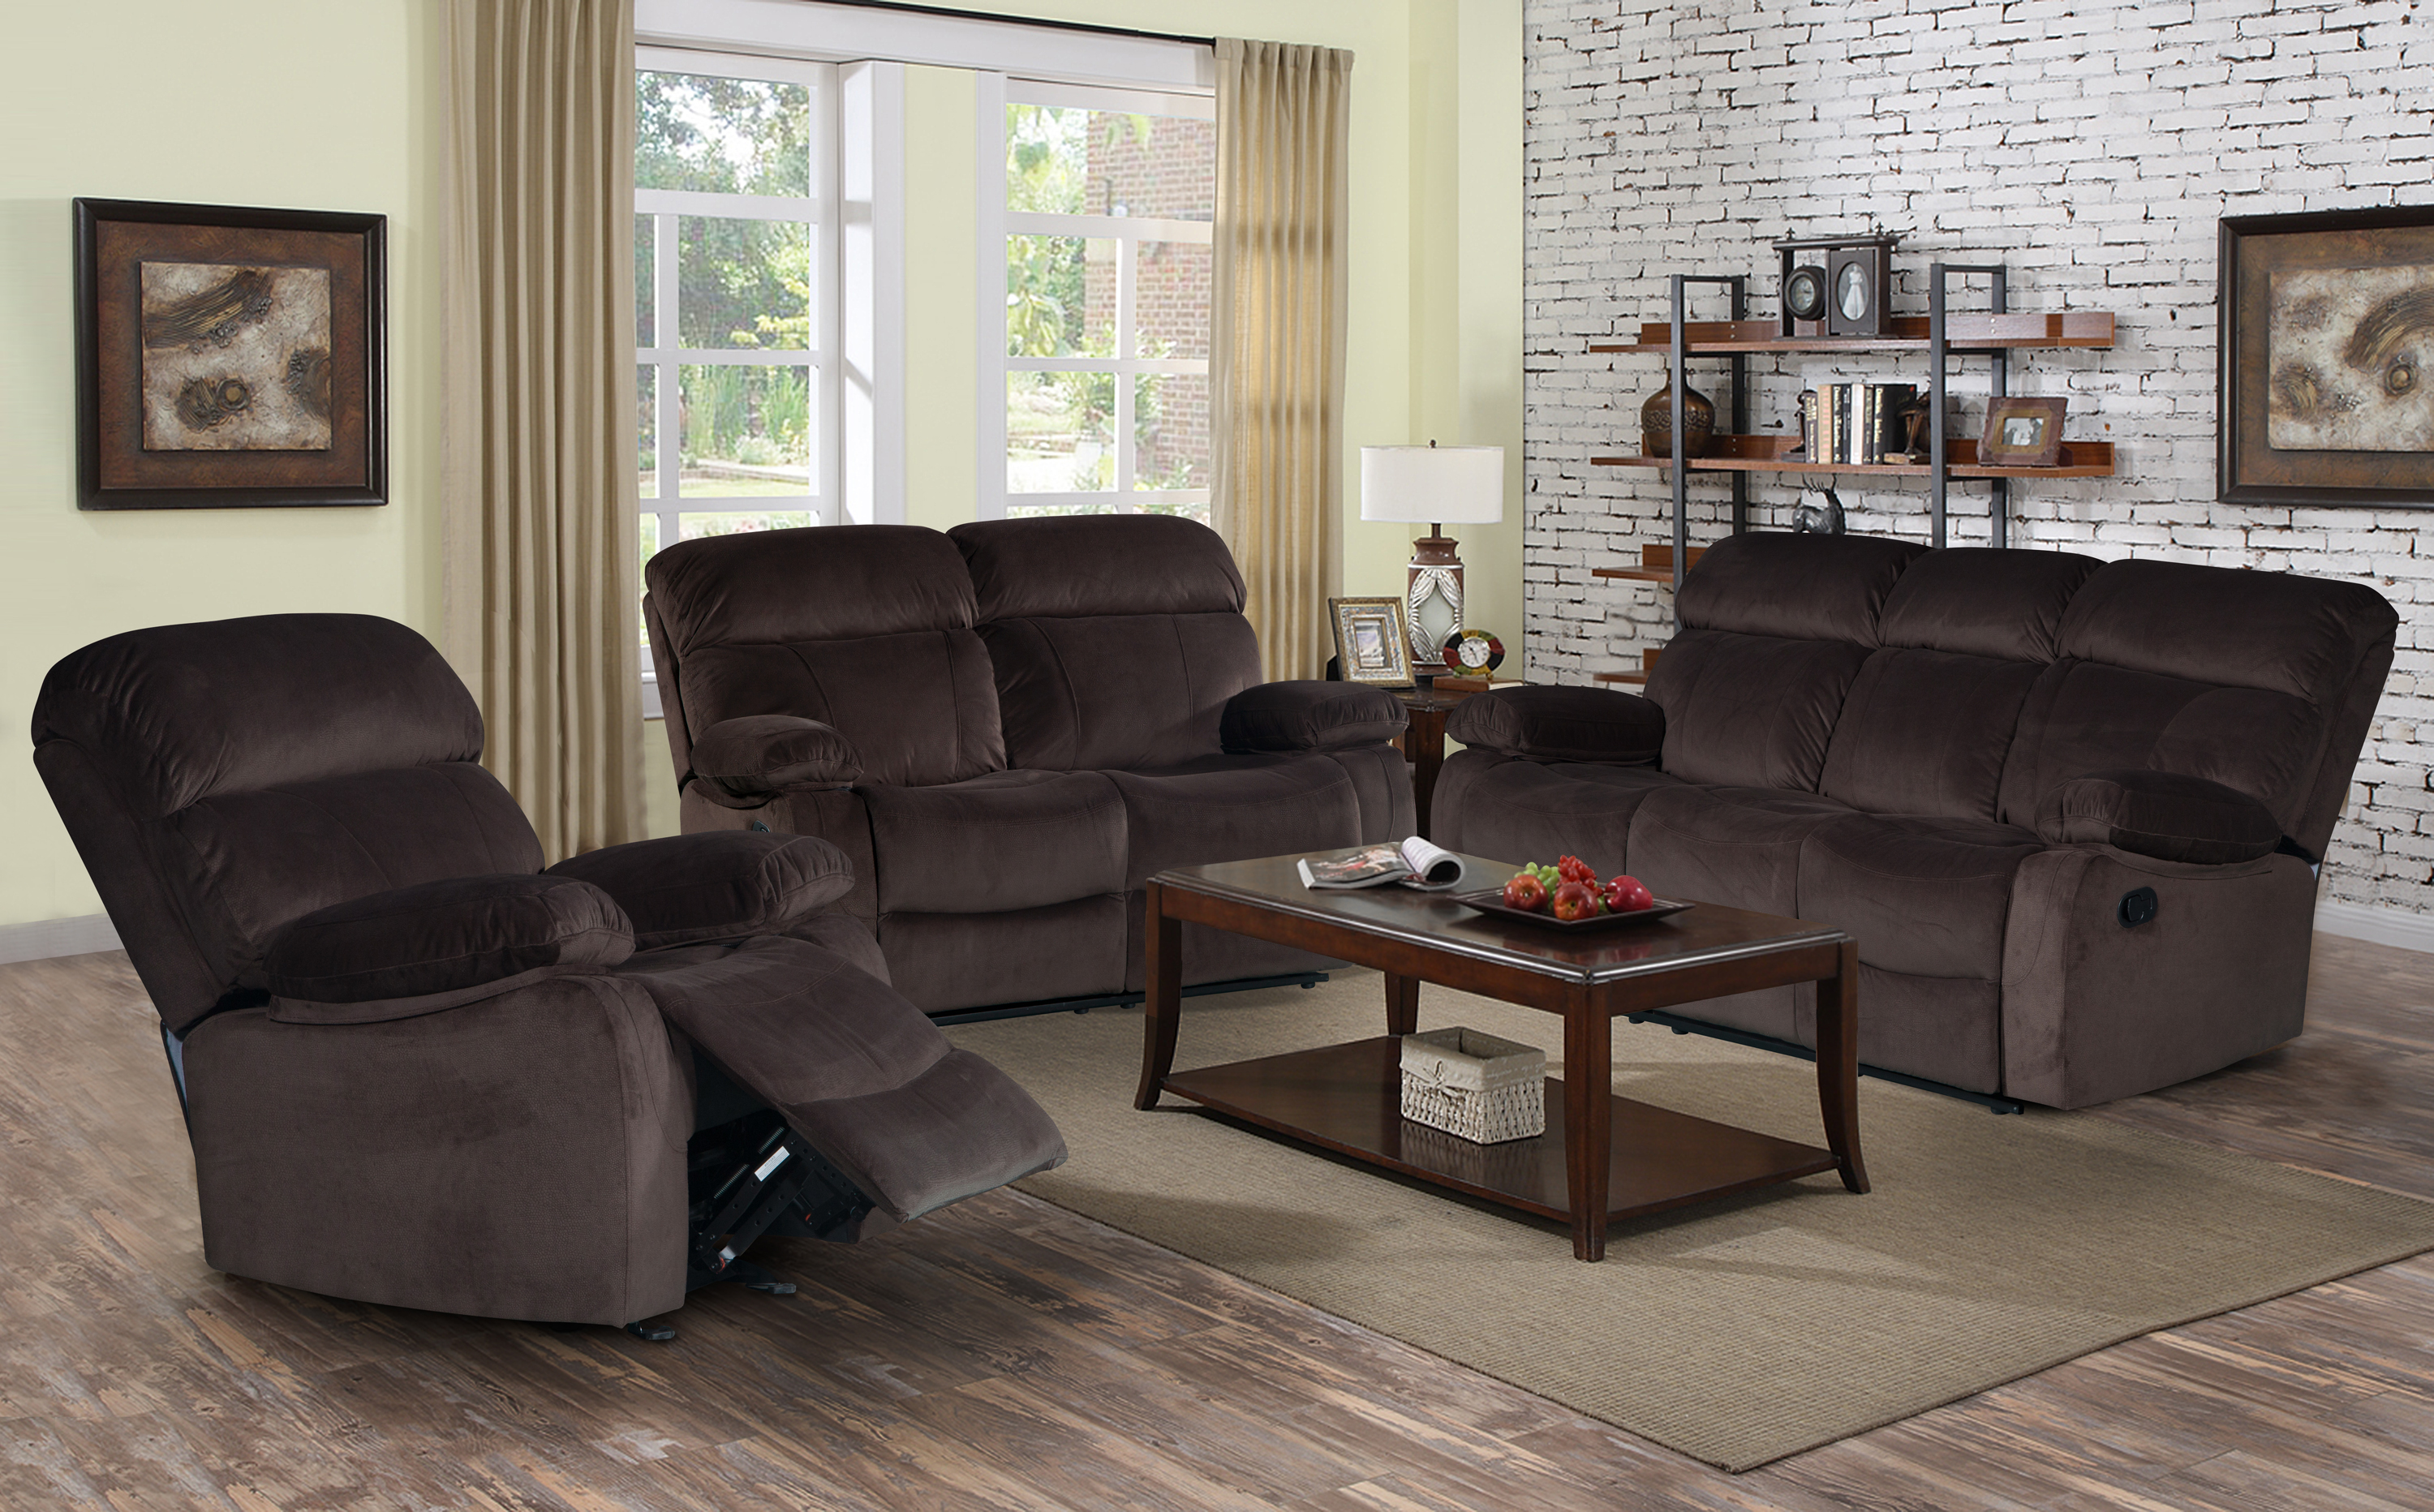 3 piece reclining living room set inspiration 3 piece for 8 piece living room furniture